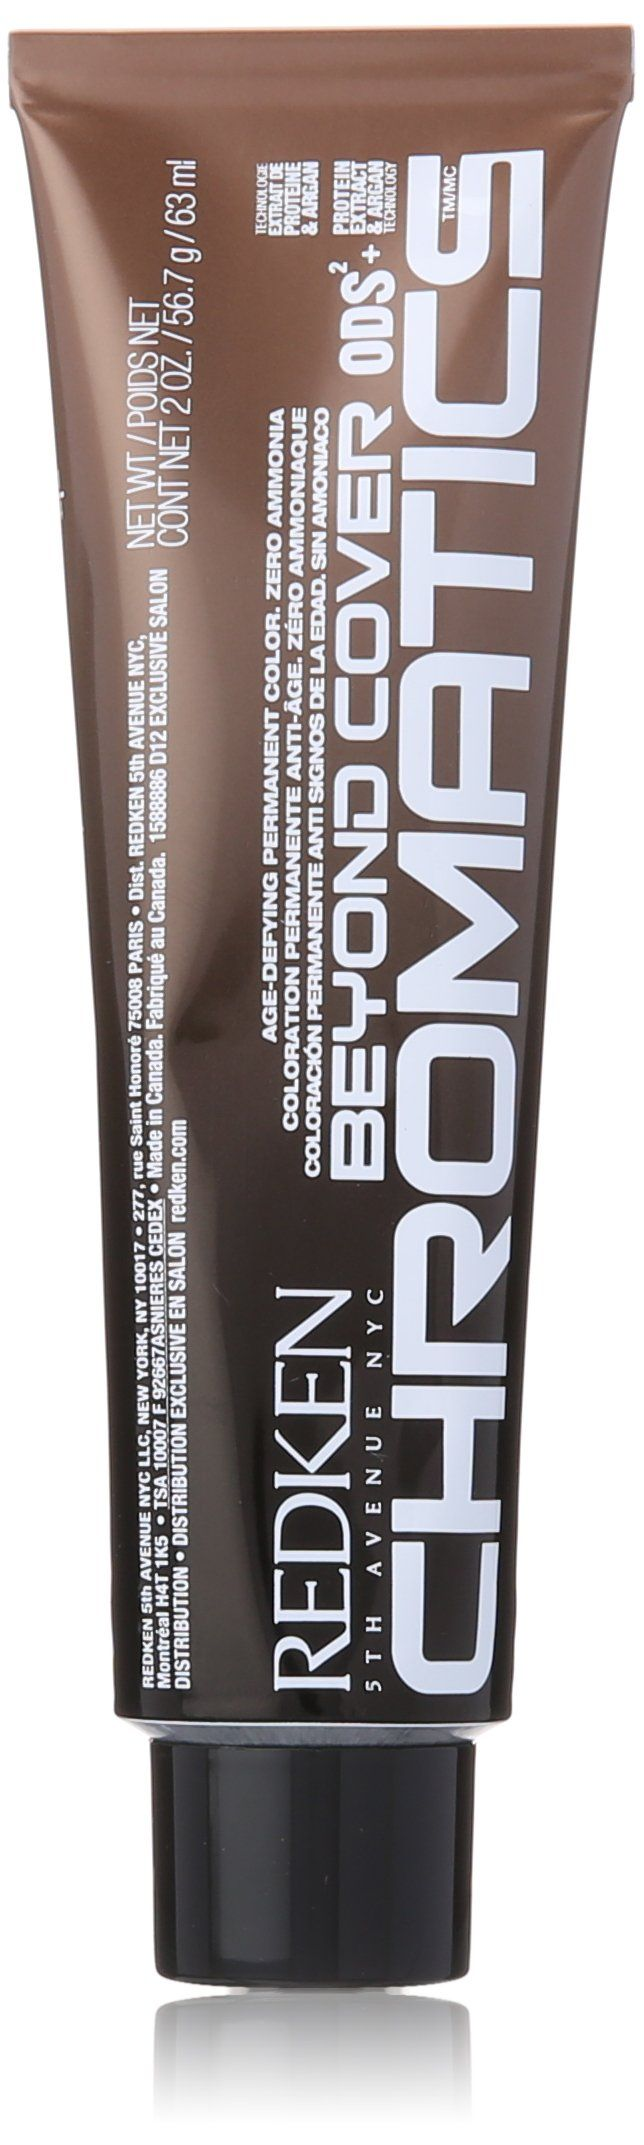 Redken Chromatics Beyond Cover Hair Color, No.5.23 Iridescent/Gold, 2 Ounce. Chromatics beyond cover hair color 5Ig (5.23)-iridescent and gold was launched by the design house of Redken. It is recommended for casual wear. 2 ounce hair color.